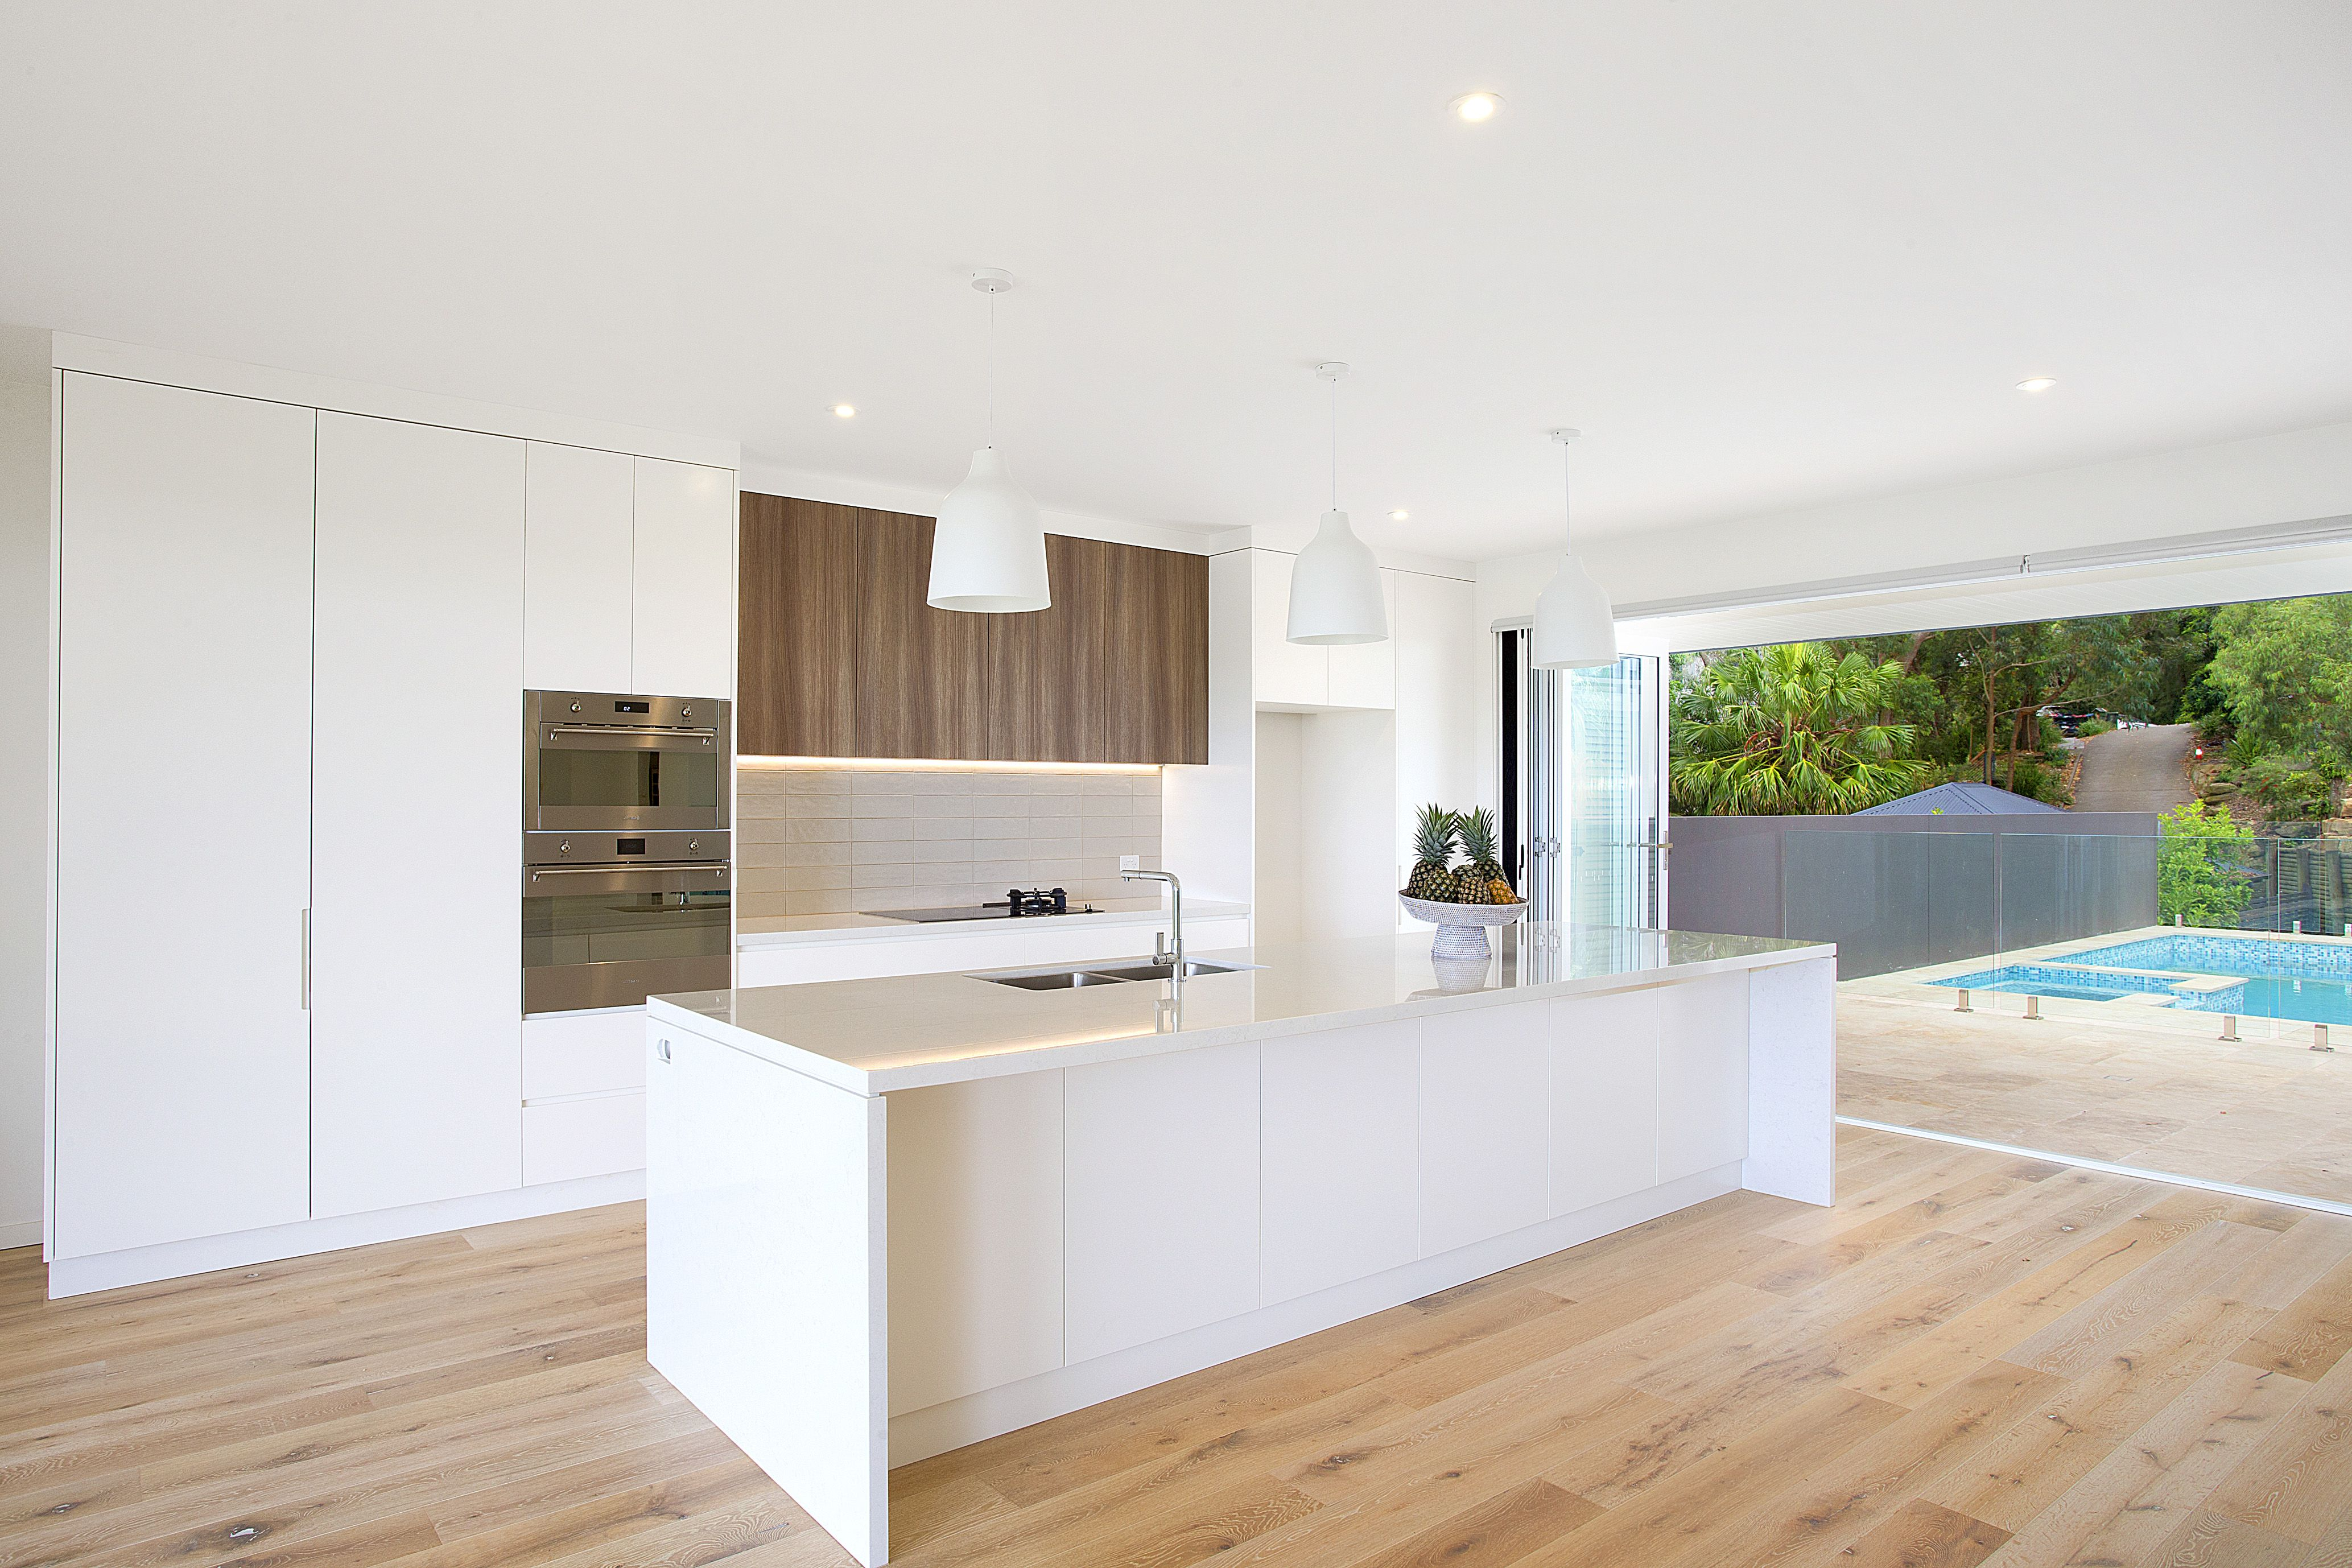 The introduction of more warmth by way of timber furniture will easily enhance this slick starting point.